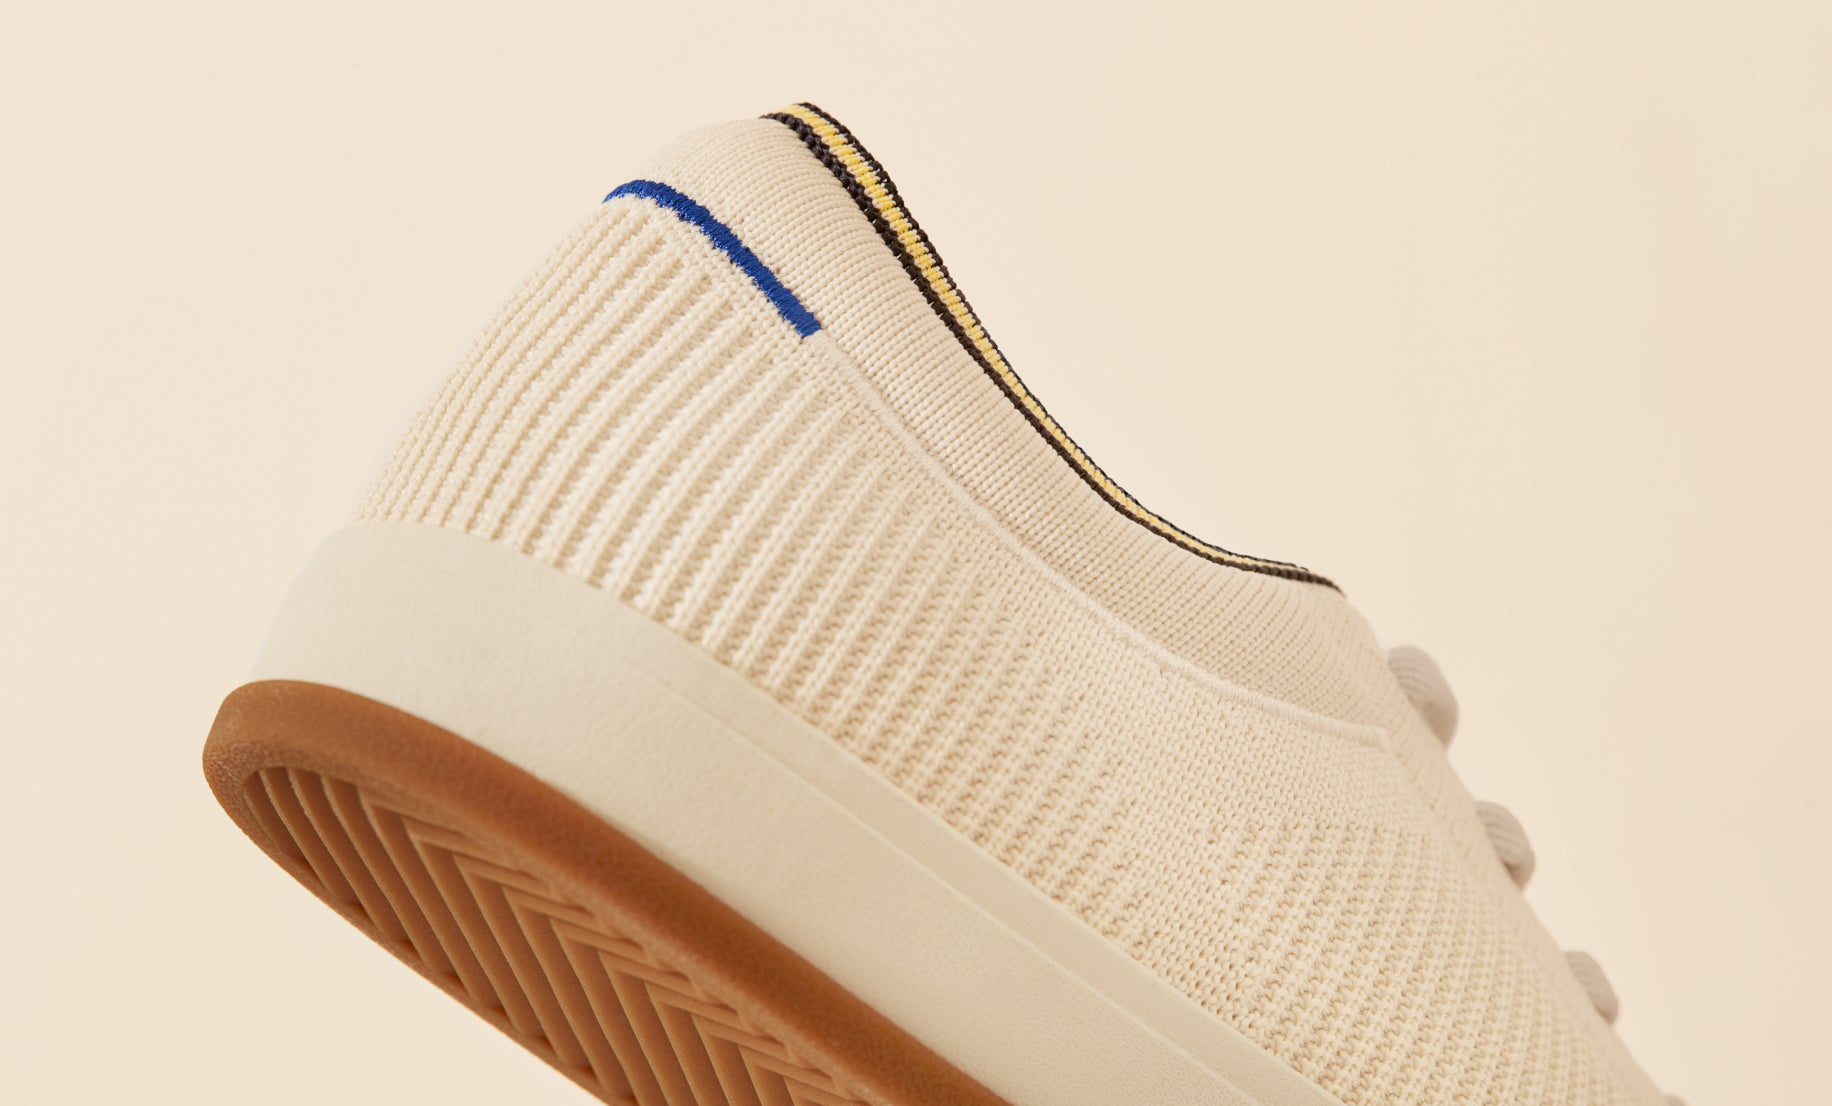 Close up of the heel area of The Lace Up in Vanilla, showing the Rothy's blue halo detail, plush ankle collar and gum outsoles.